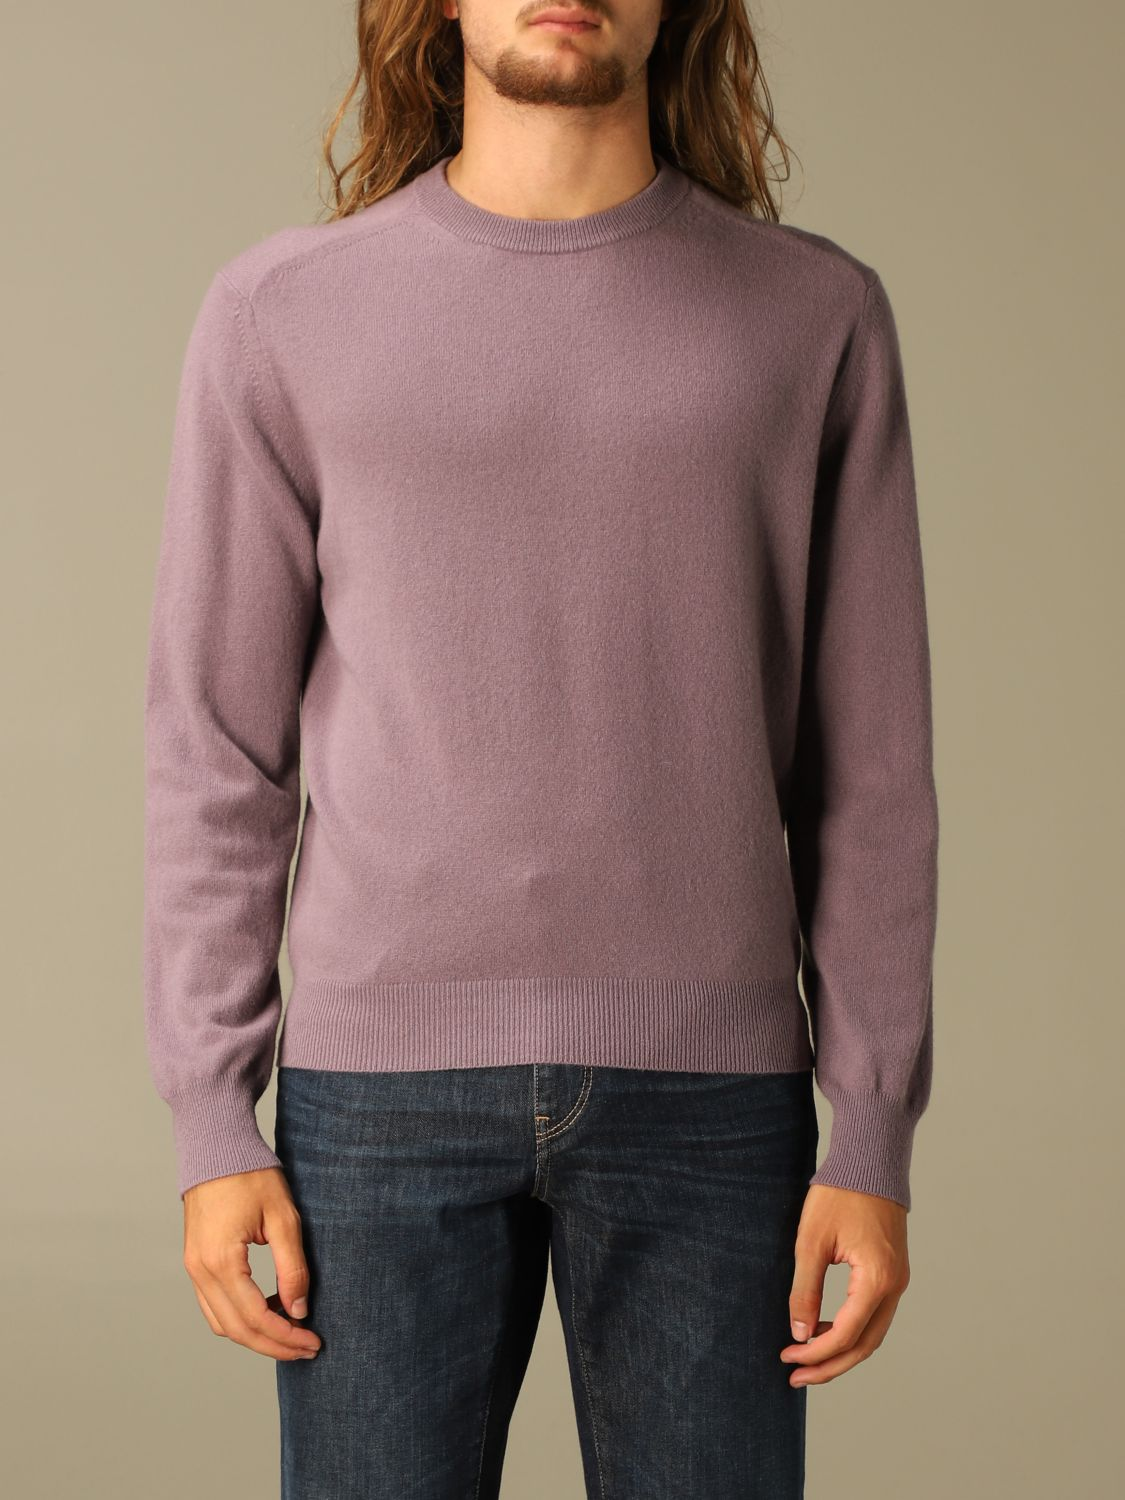 Sweater Z Zegna: Z Zegna cashmere sweater with long sleeves wisteria 1